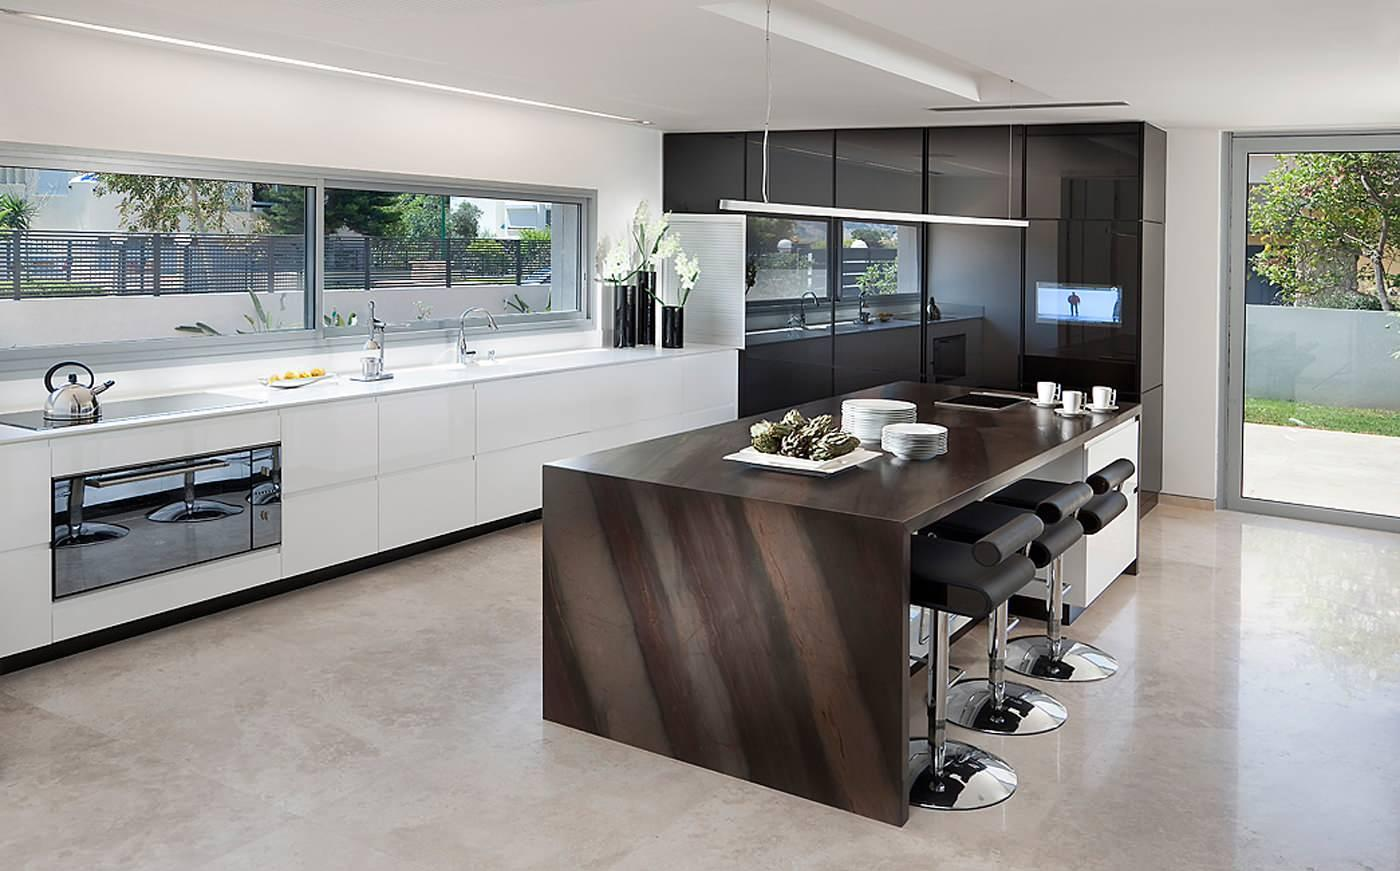 kitchen design ideas screenshot - Kitchen Design Idea